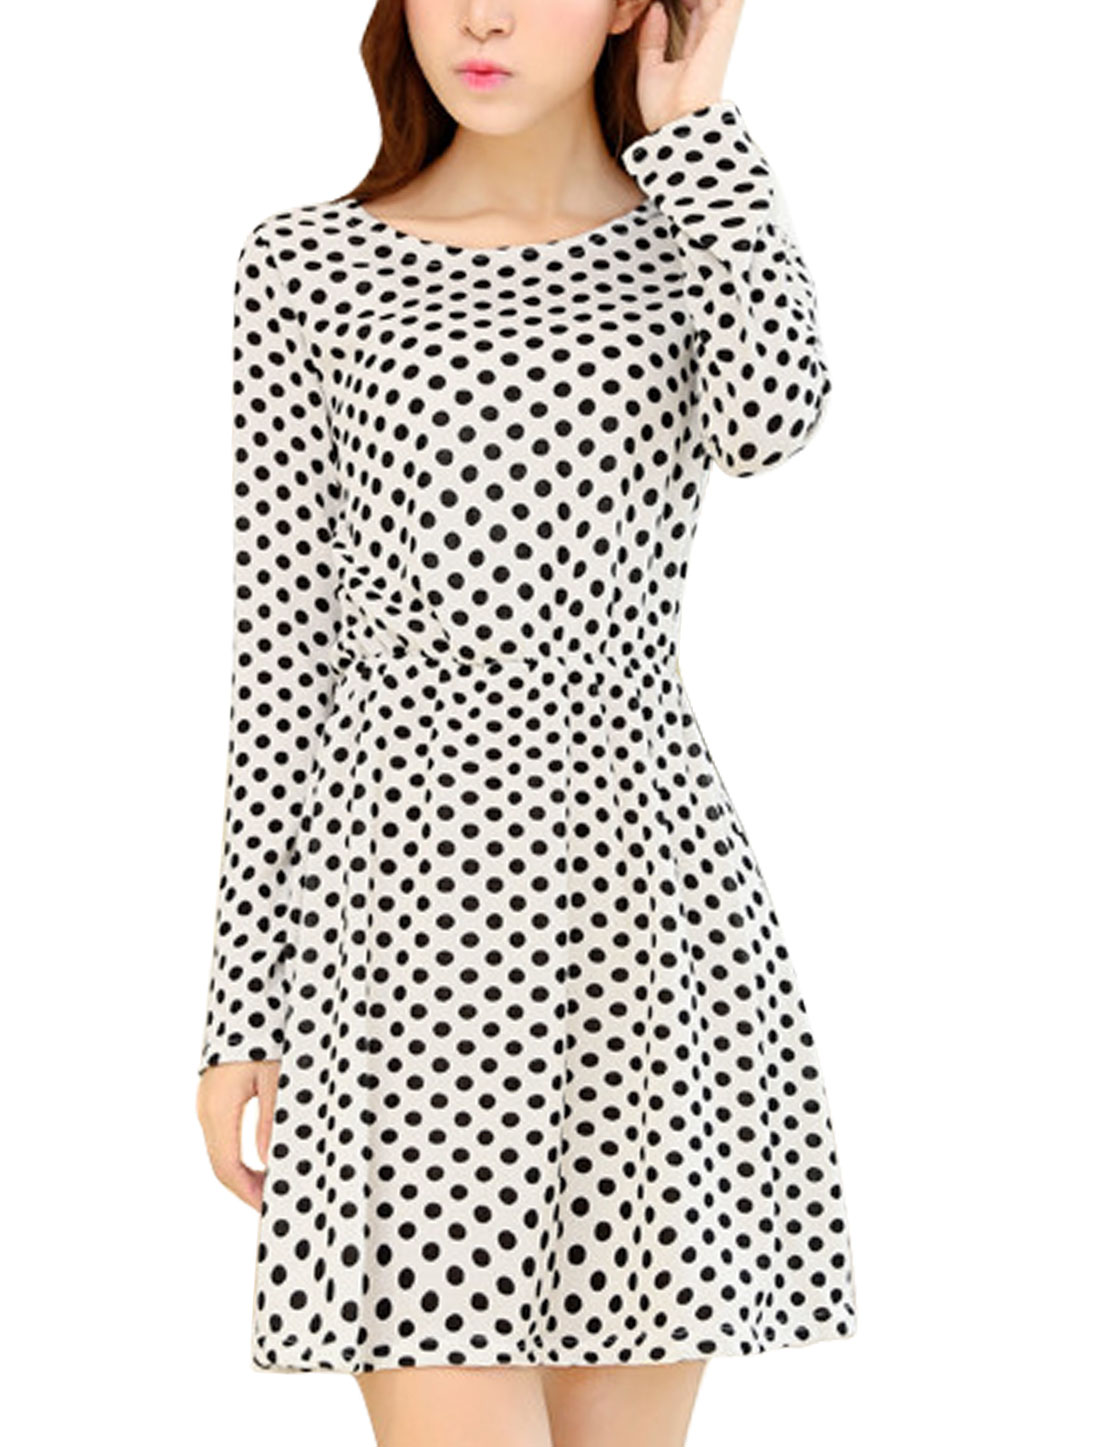 Women Sweet Allover Polka Dots Print A Line Unlined Mini Dress White XS